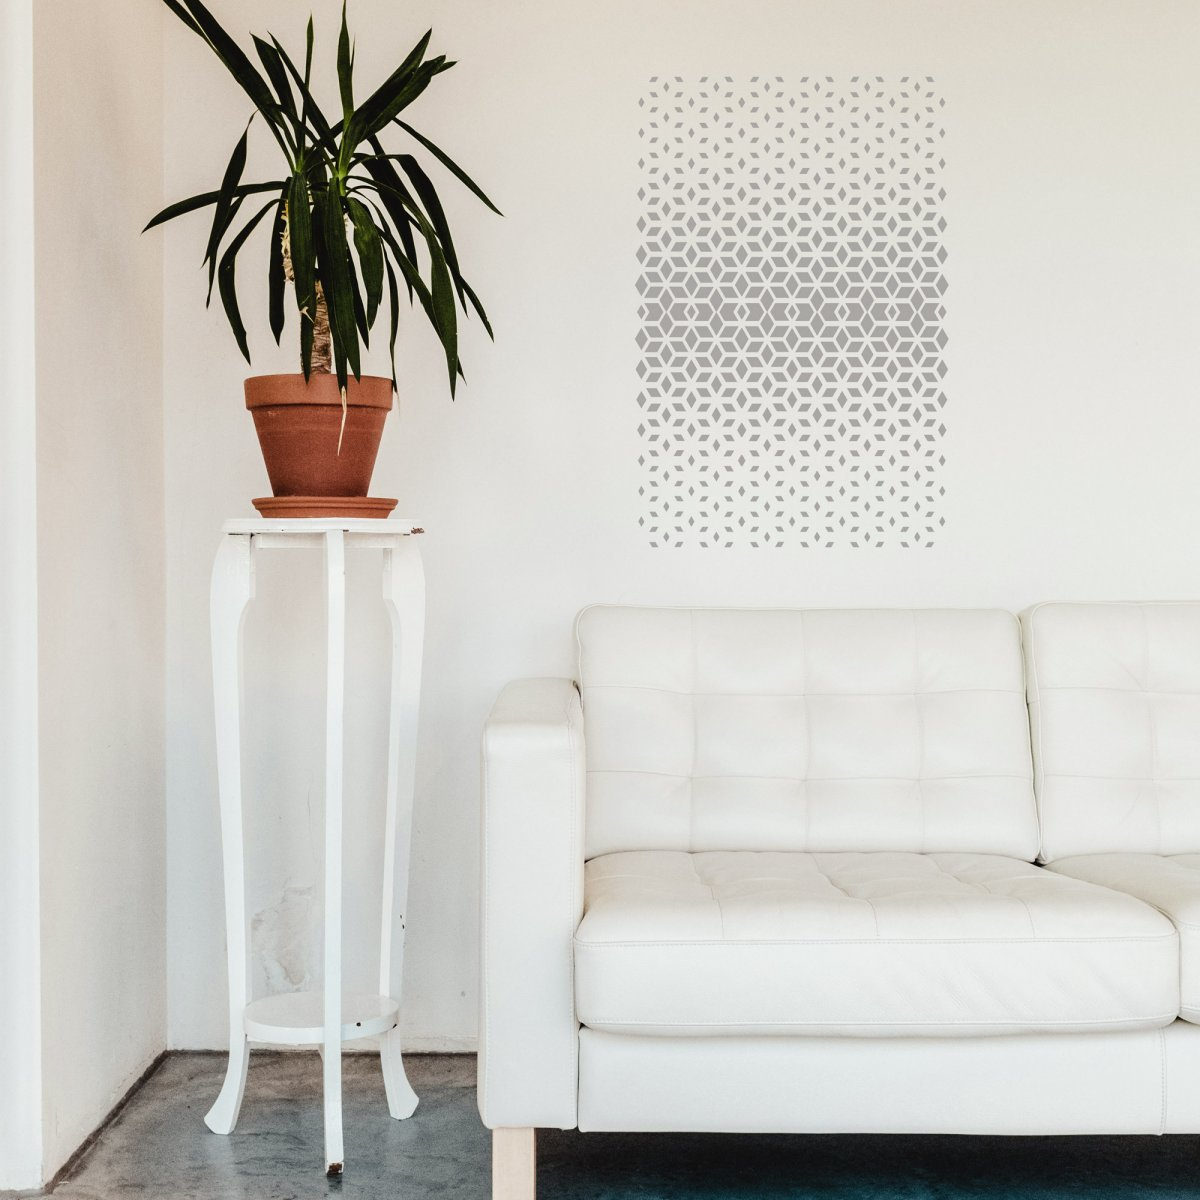 DIAMOND POWDER / Reusable Allover Large Wall Stencils for Painting